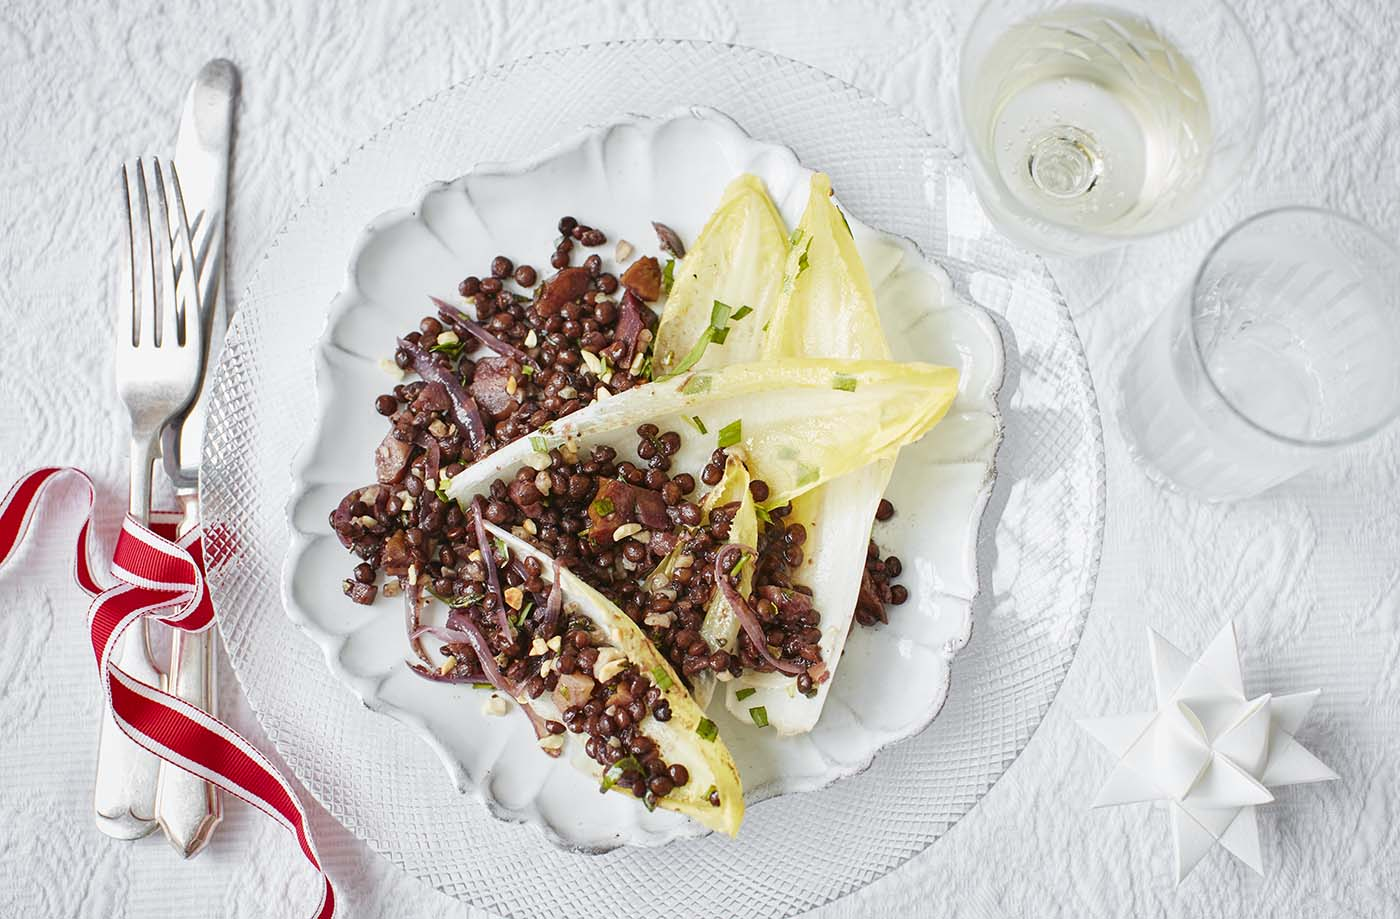 Puy lentil, toasted hazelnut and herb salad with chestnuts recipe